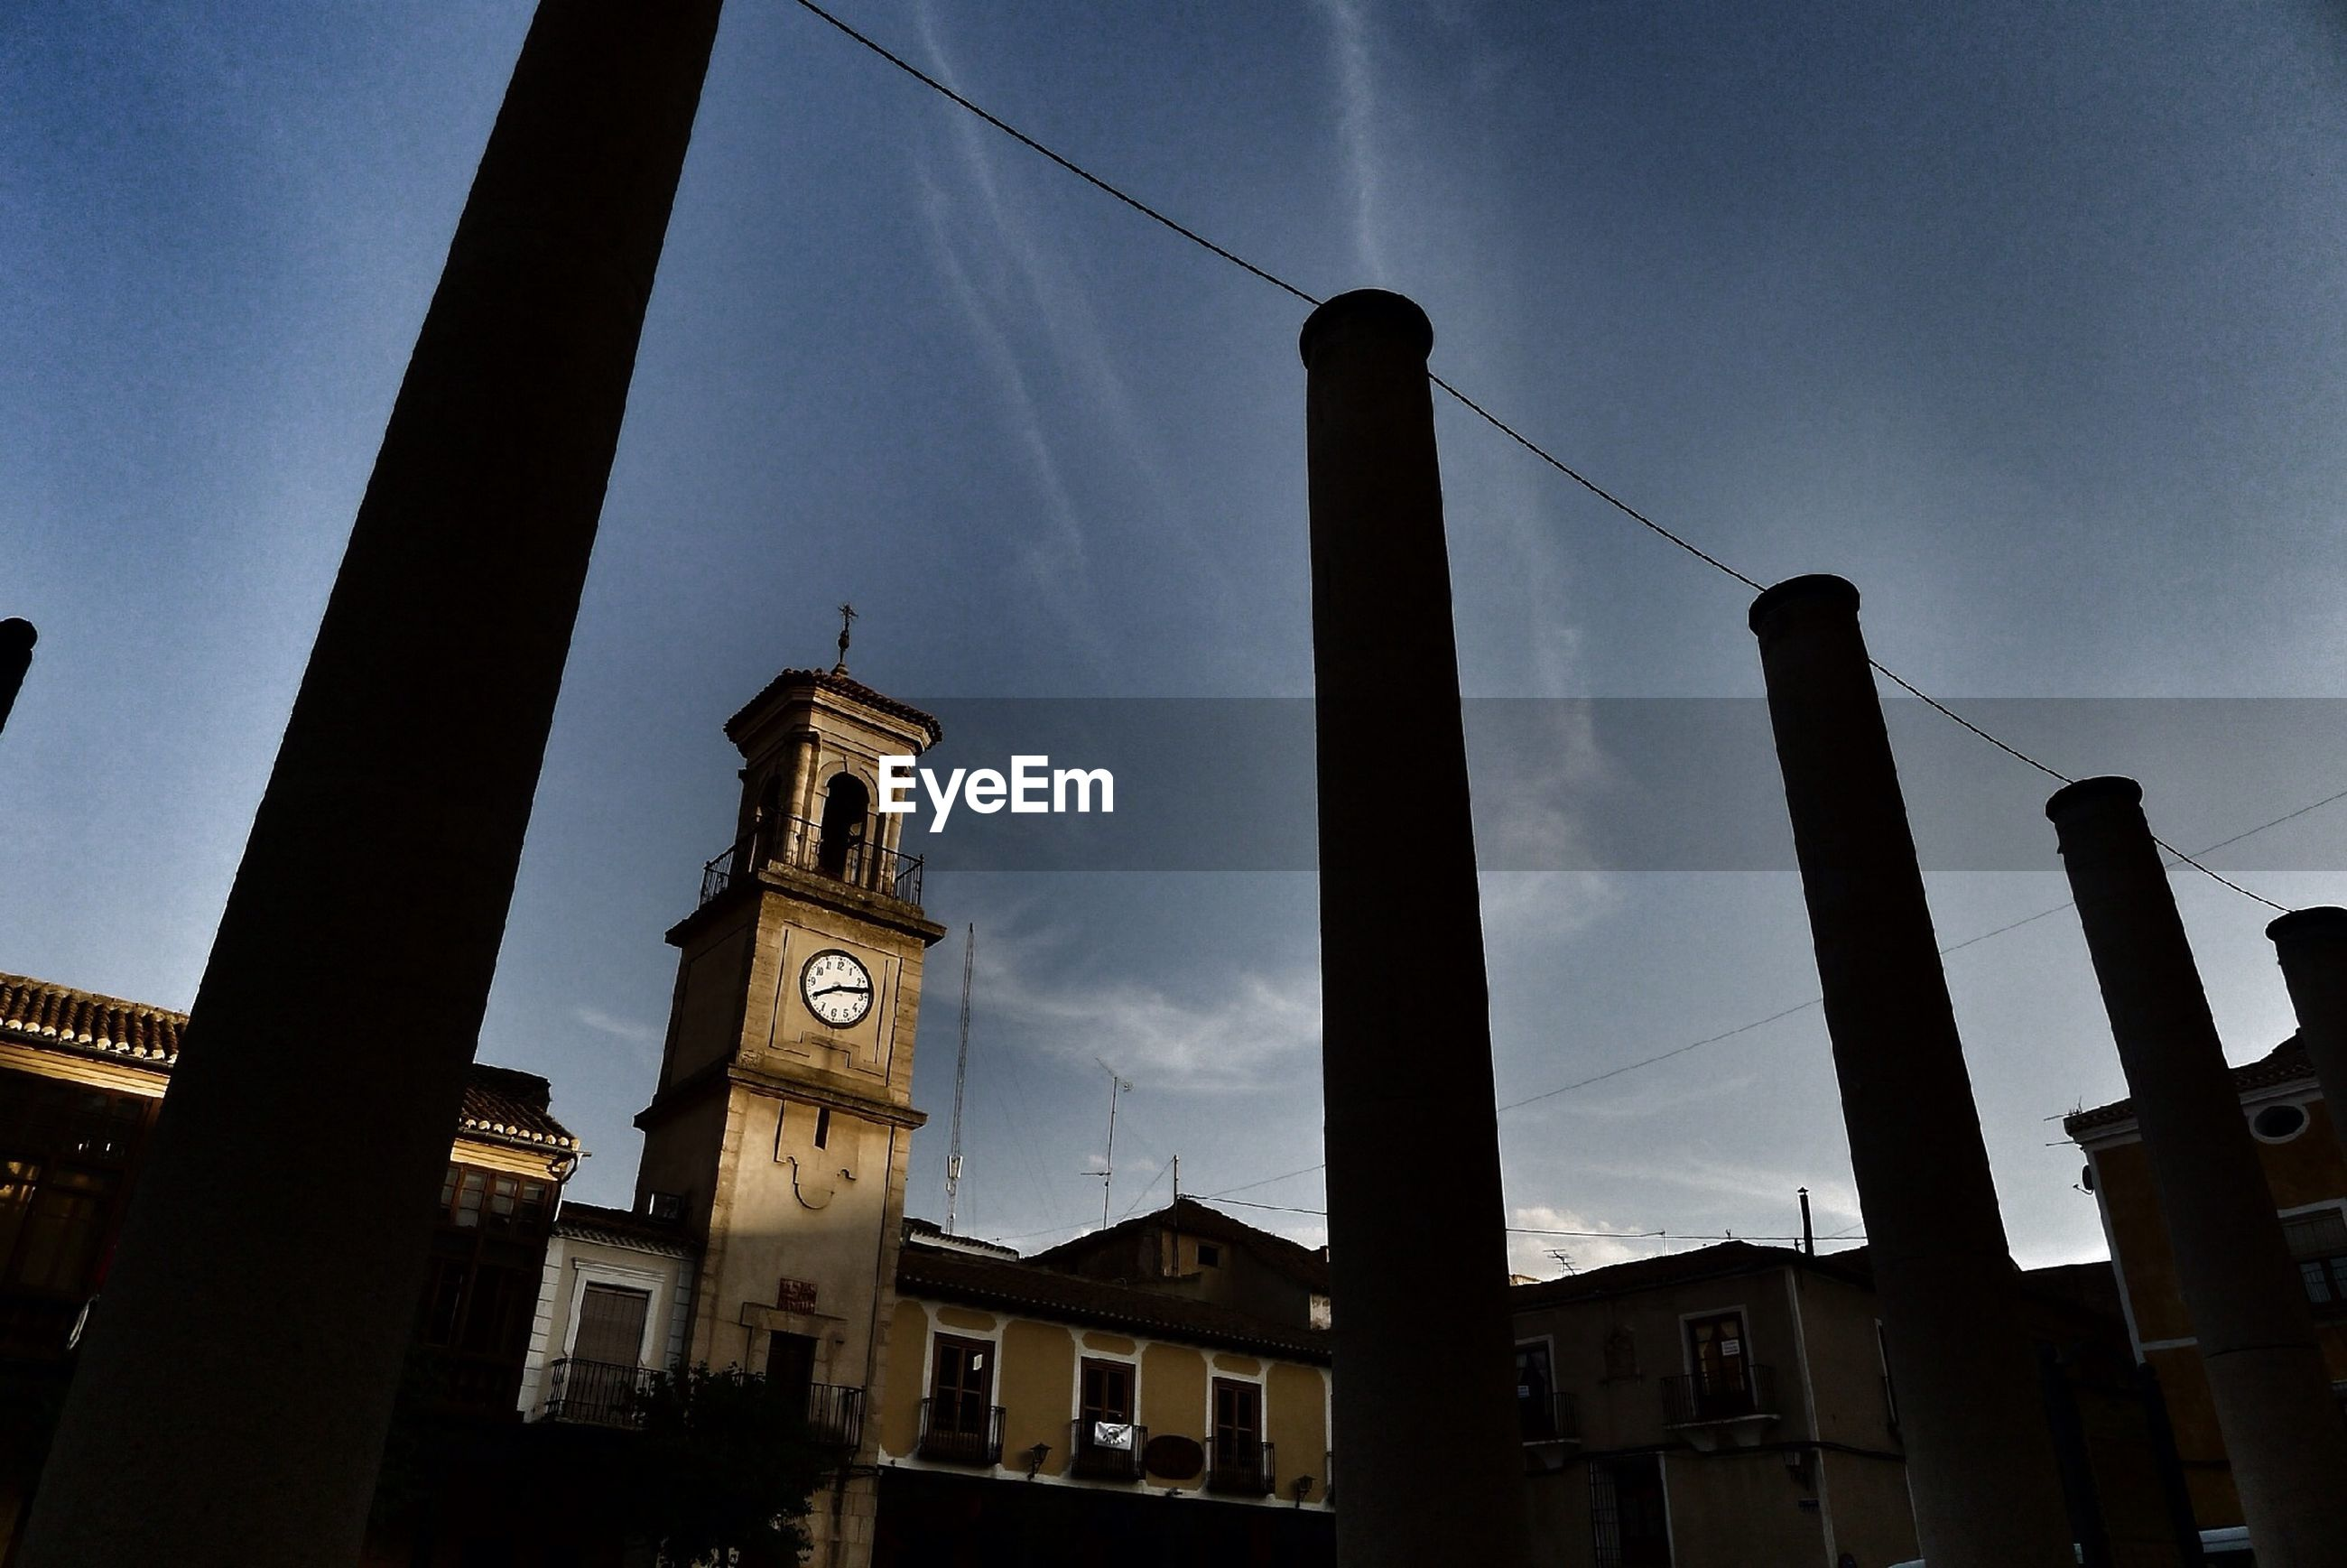 Low angle view of clock tower and silhouette architectural towers against sky